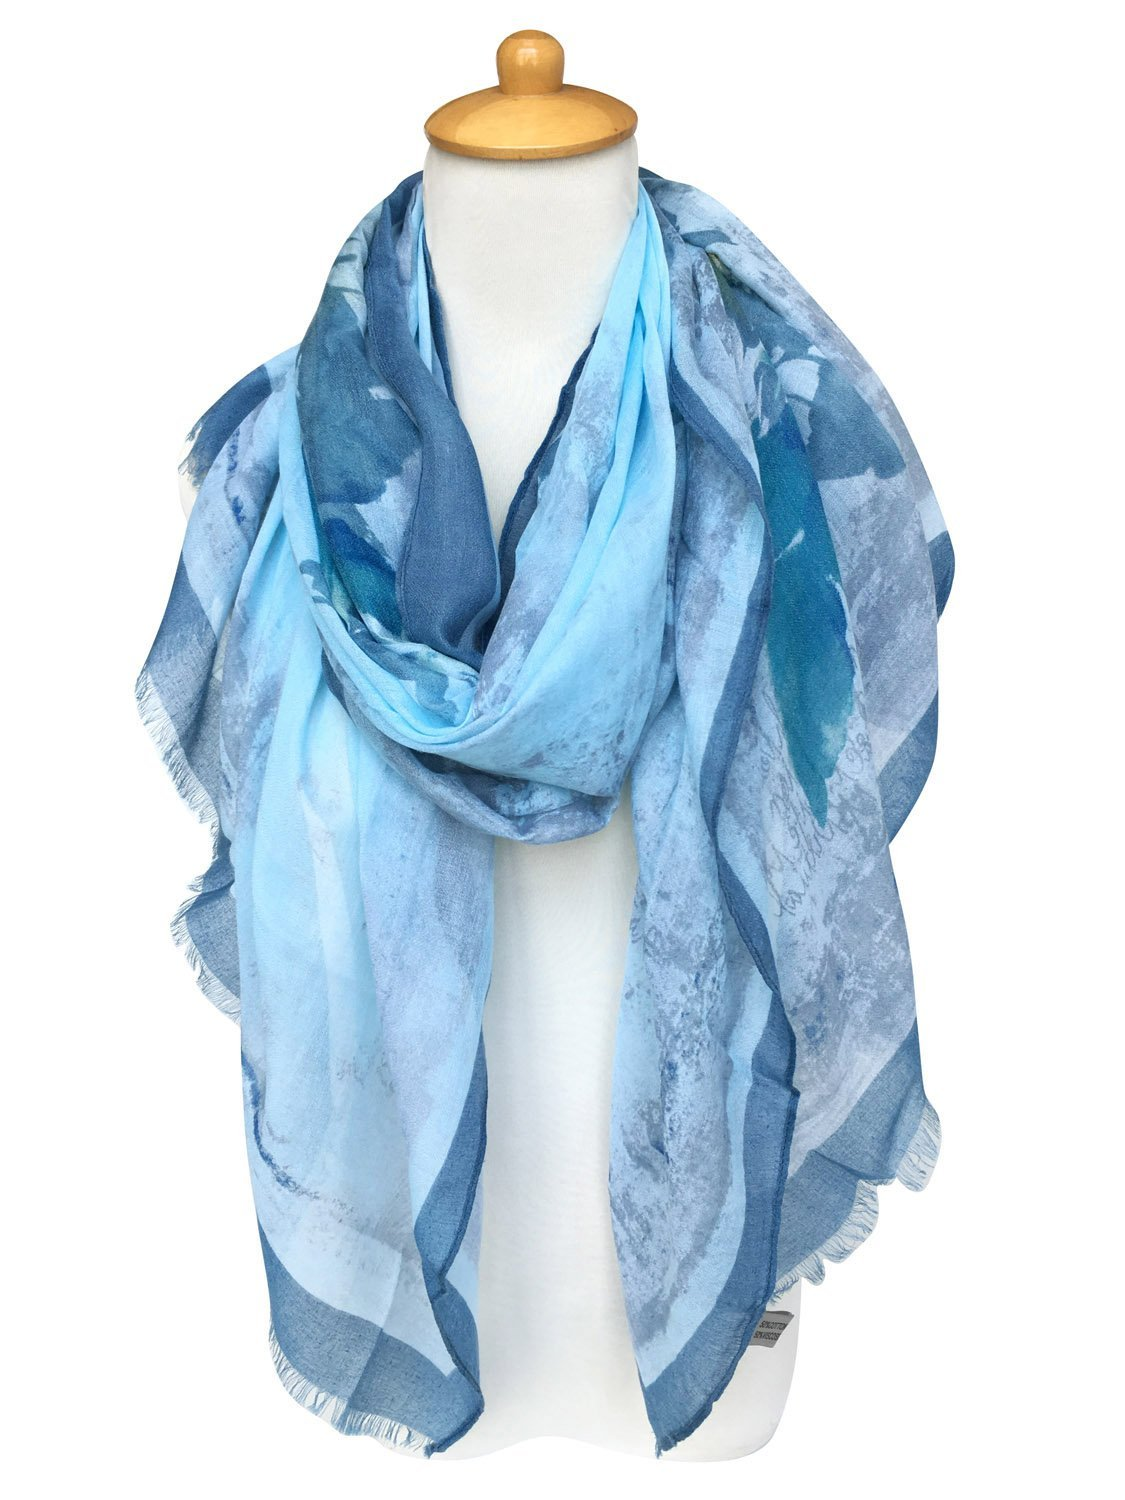 GERINLY Summer Scarfs Rosa Chinensis Print Beach Wrap Womens Travel Shawls (AzureBlue) by GERINLY (Image #2)